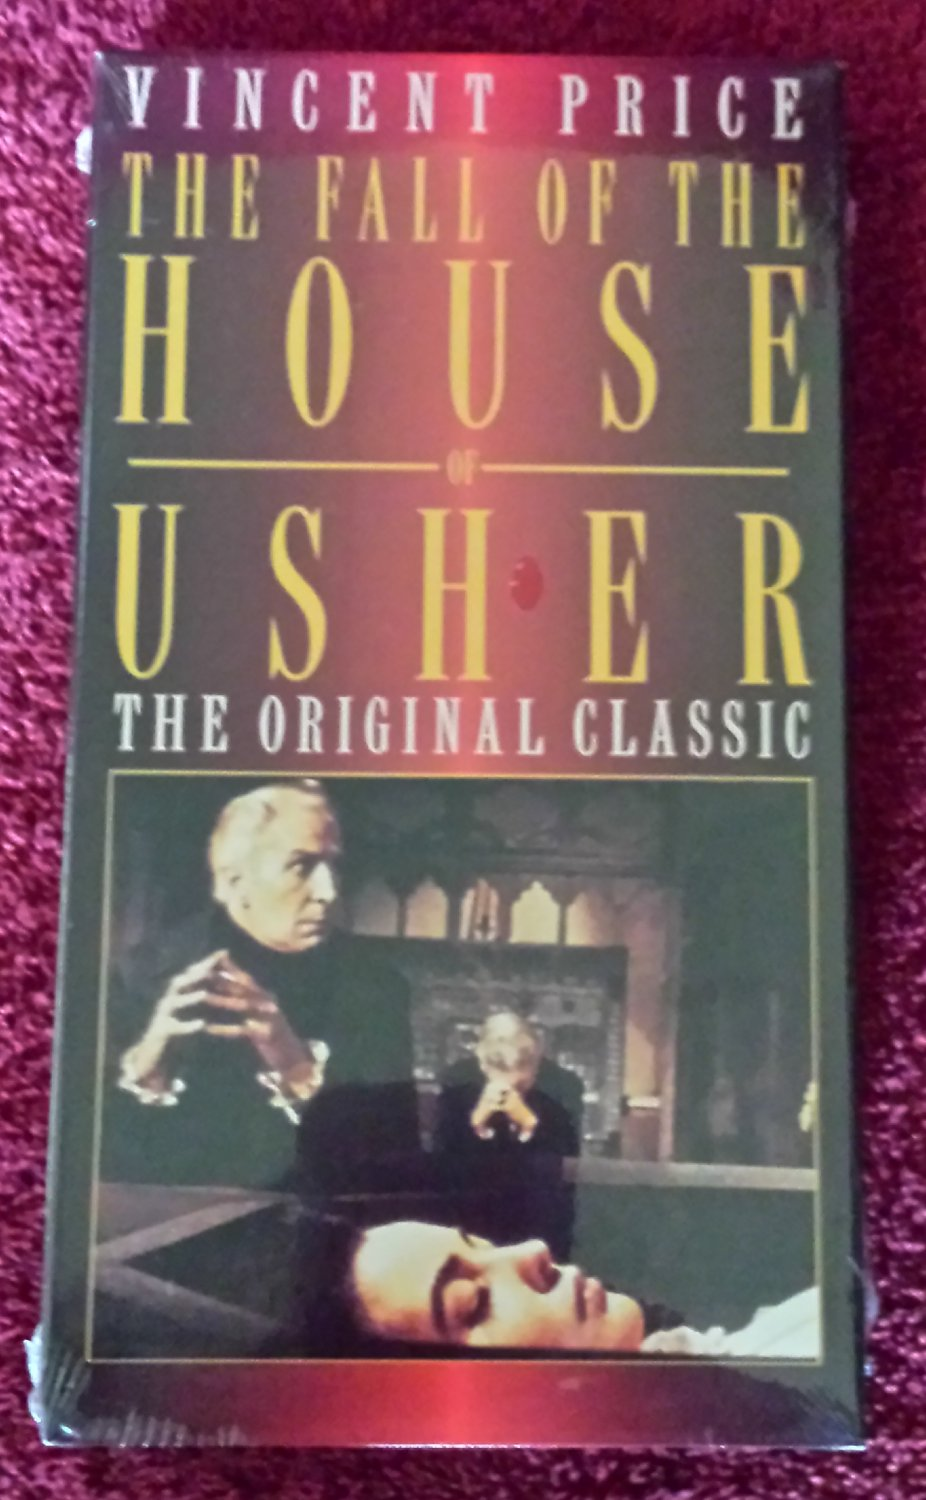 THE FALL OF THE HOUSE OF USHER (VHS 1960)